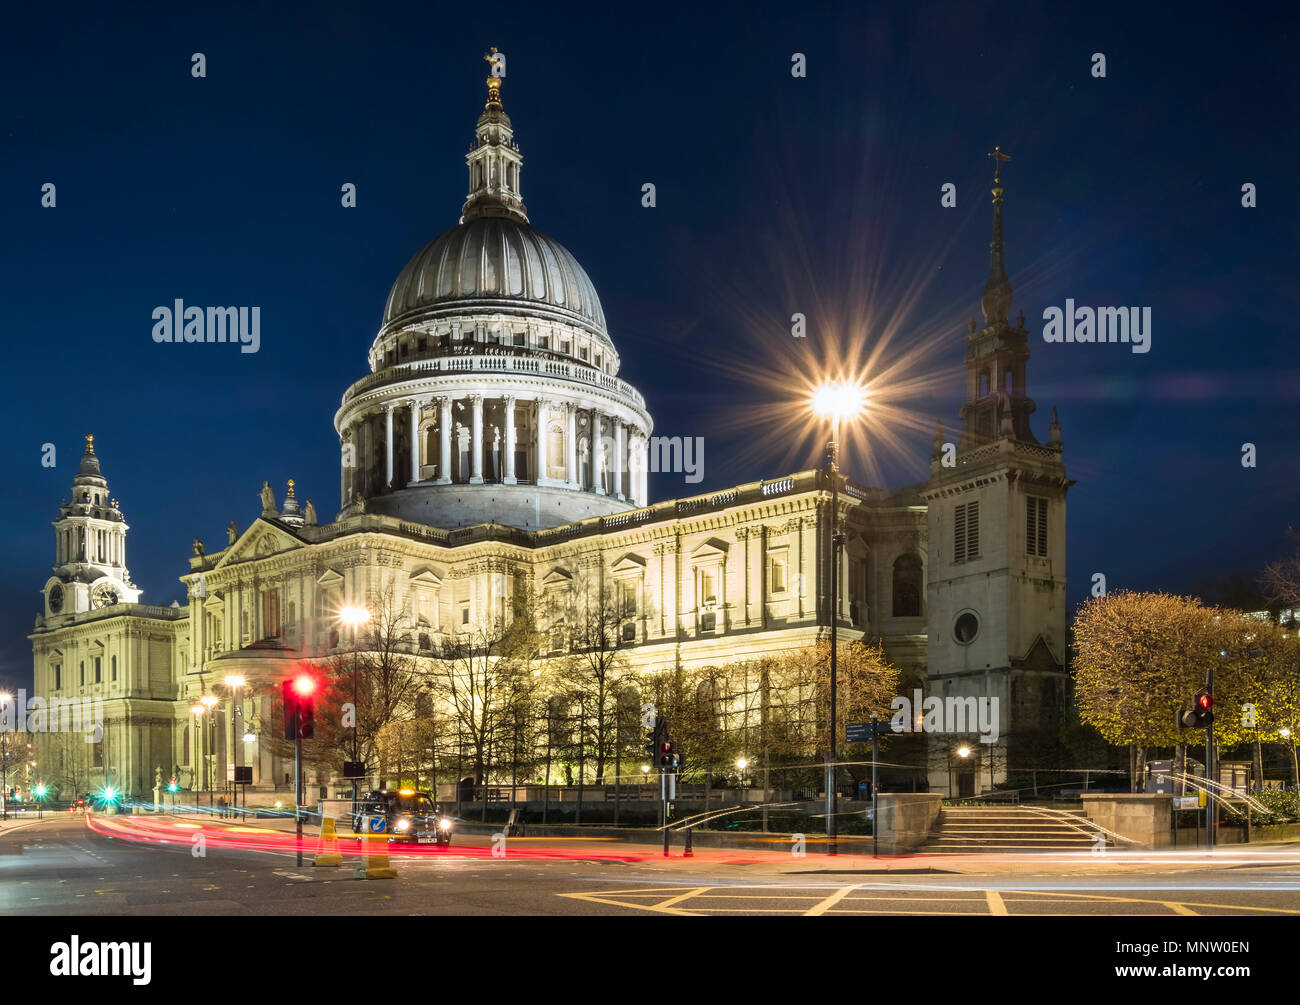 St Pauls Cathedral bei Nacht, London, England, UK Stockbild